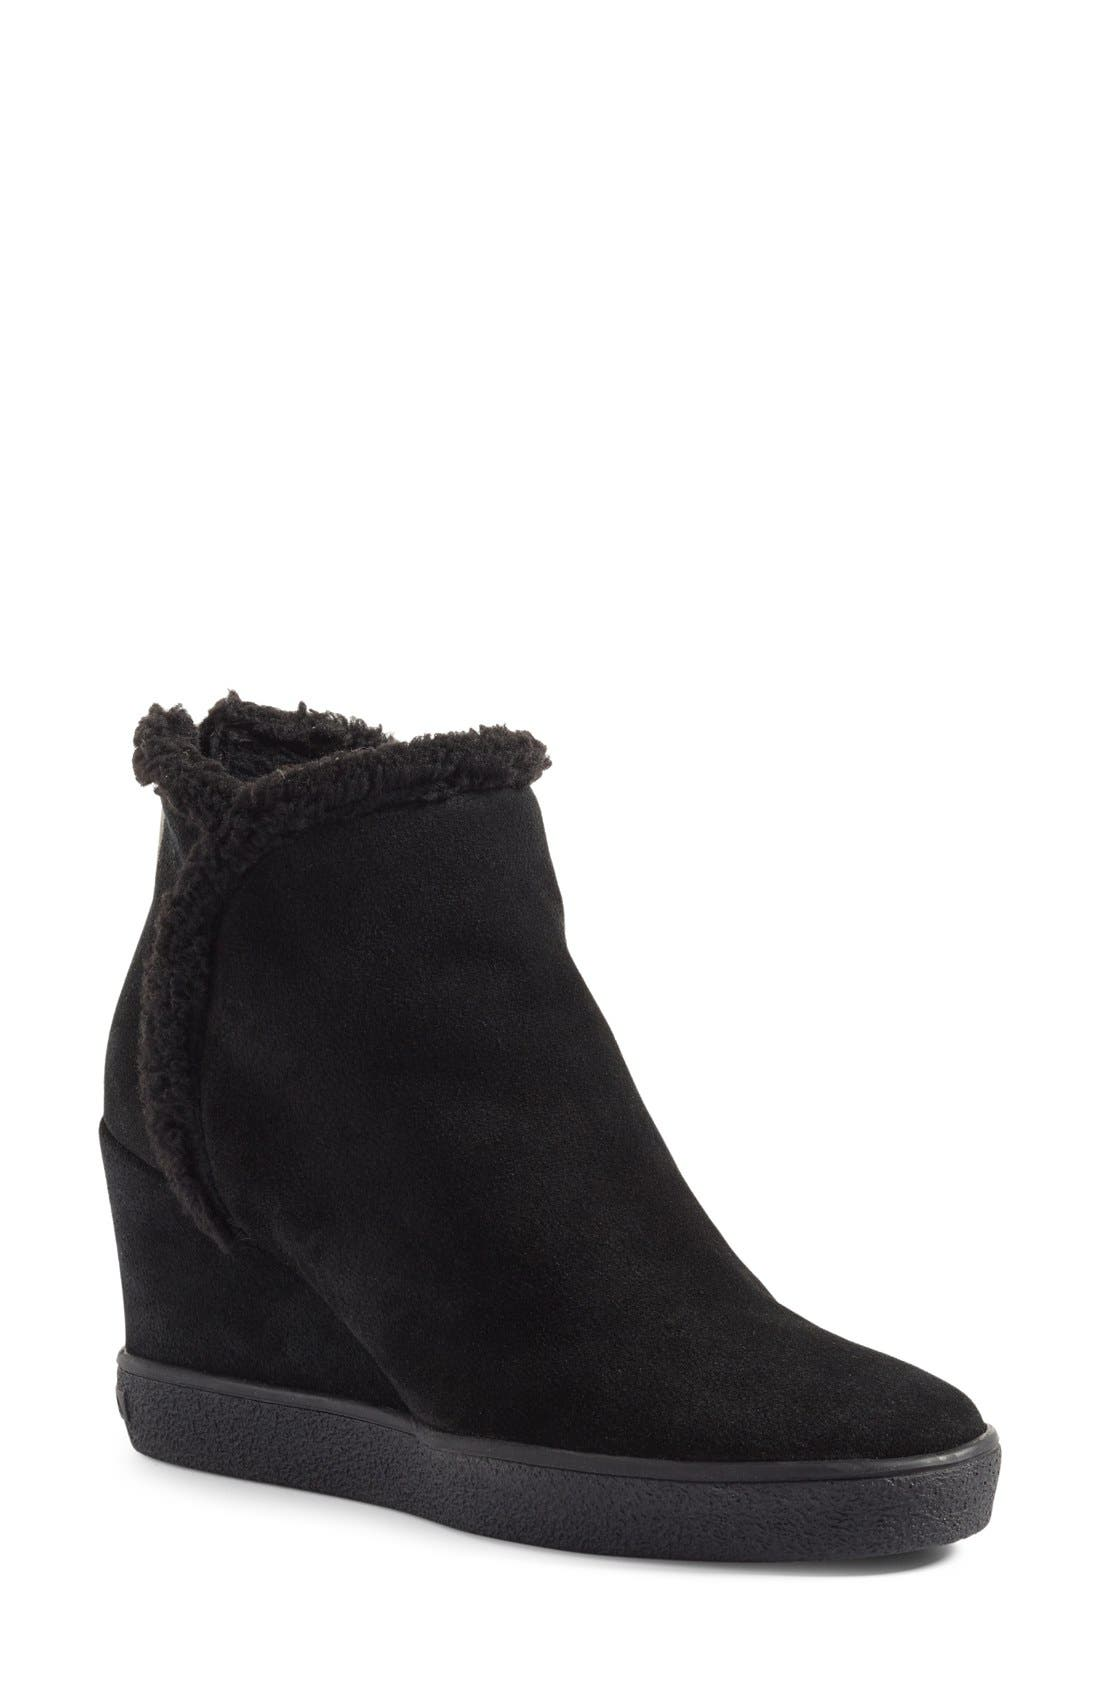 Charlie Weatherproof Hidden Wedge Bootie,                             Main thumbnail 1, color,                             001